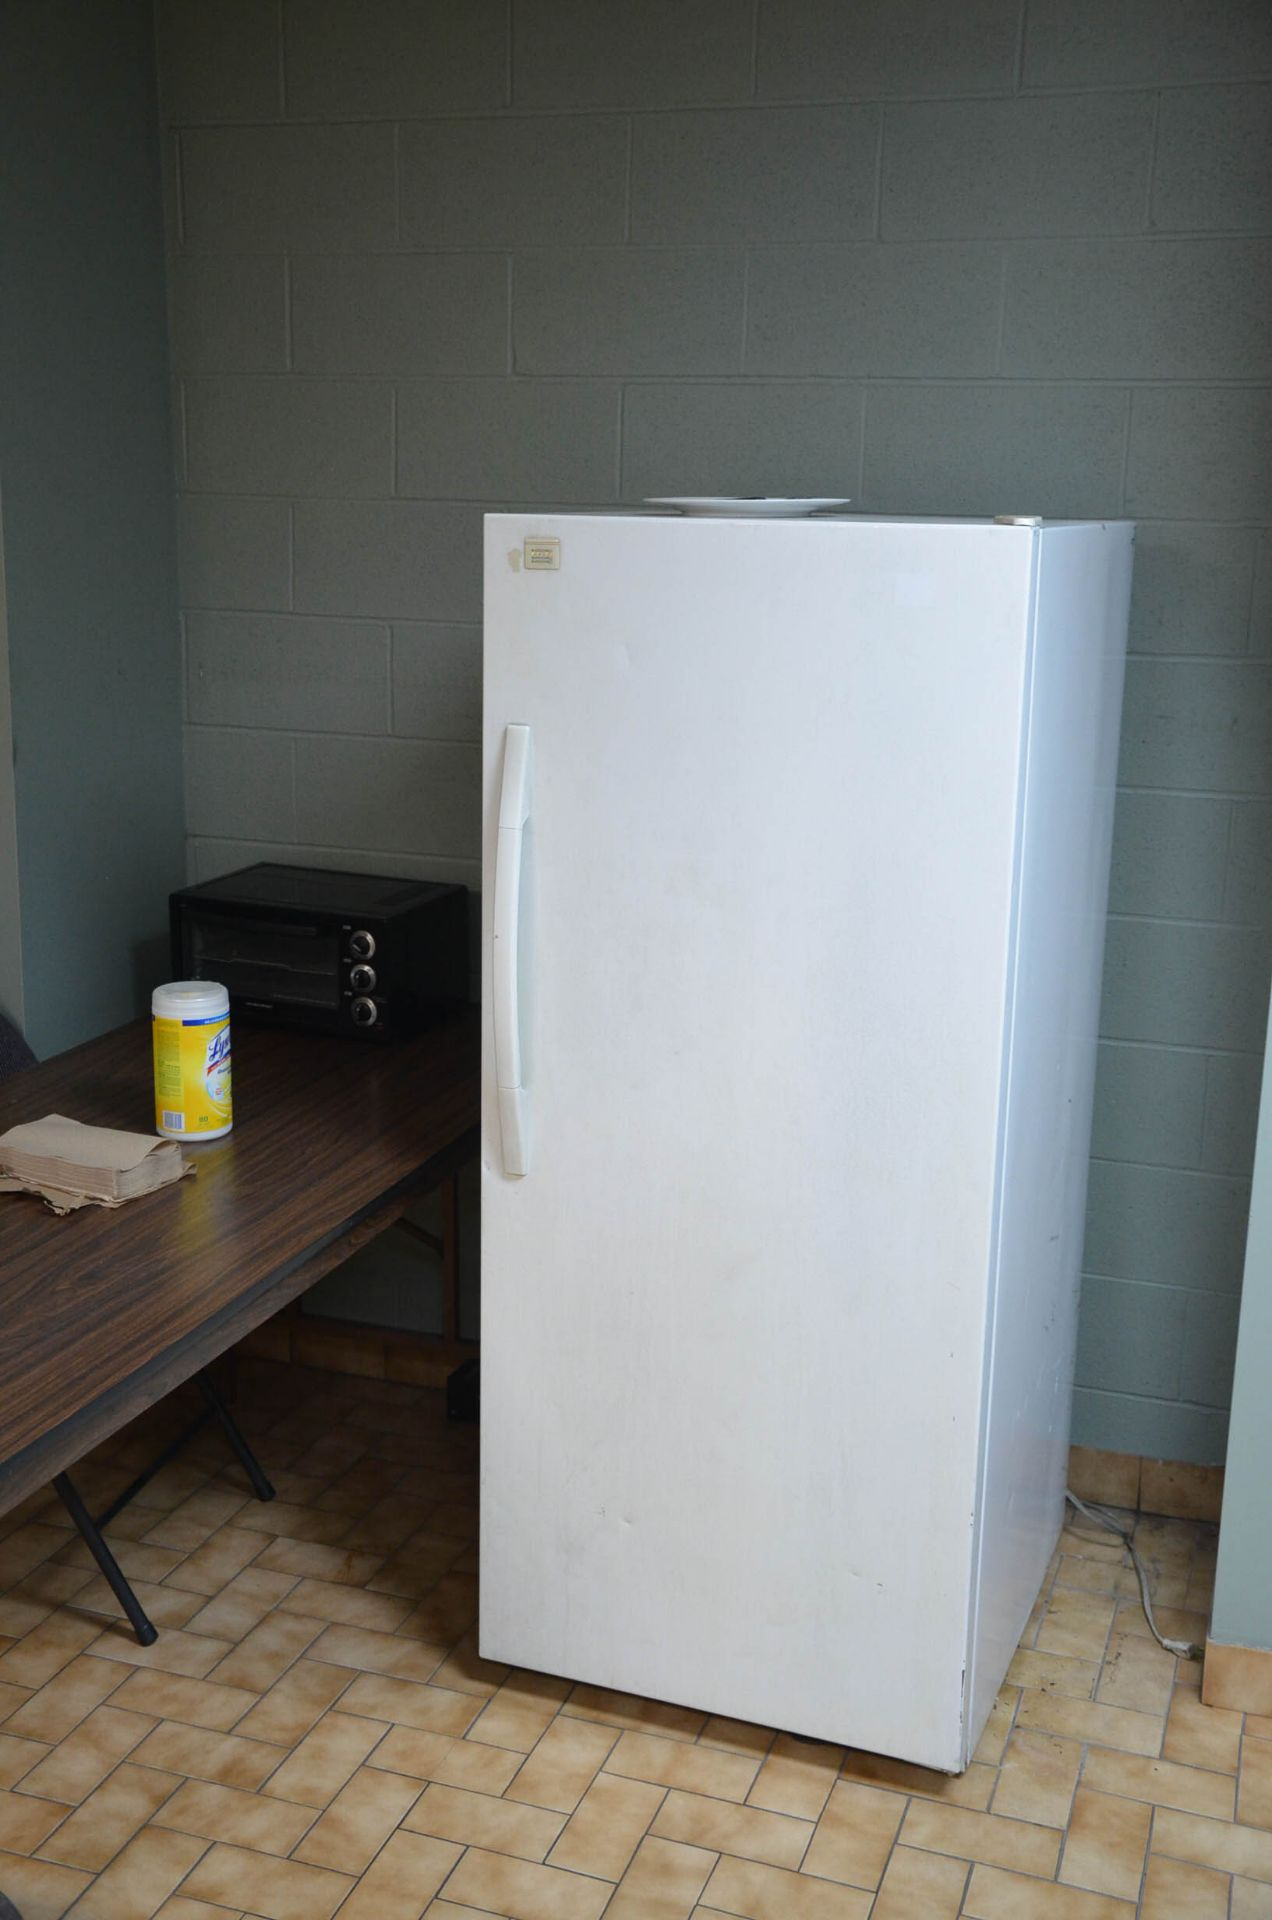 LOT/ LOCKERS AND APPLIANCES - Image 2 of 3